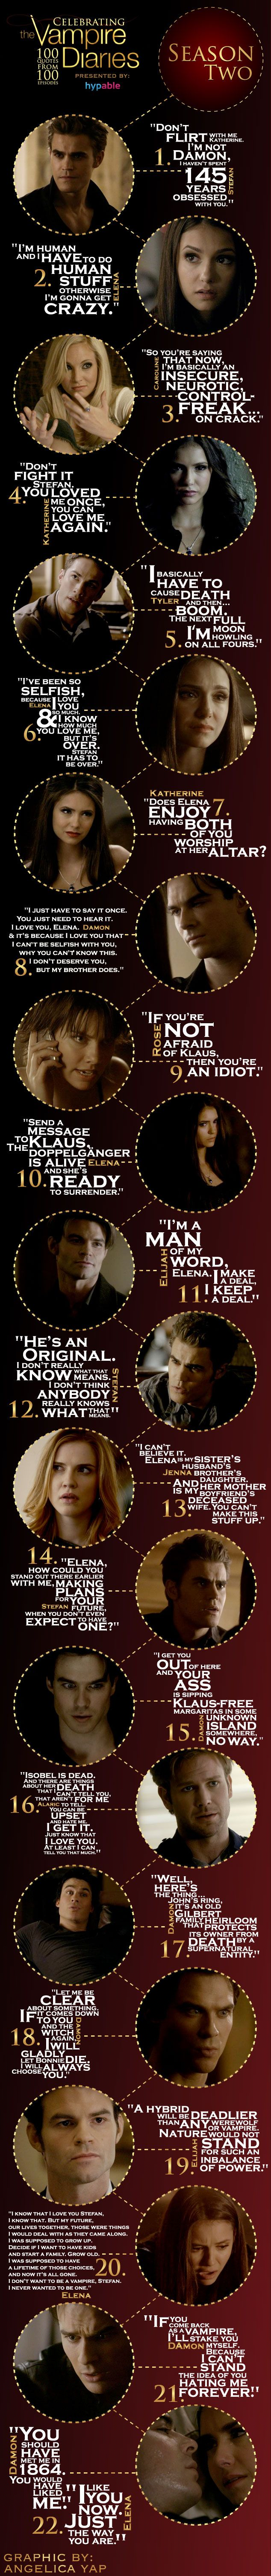 Season 2 Check out the best quotes from The Vampire Diaries season 2 as we continue to celebrate 100 episodes with our favorite Mystic Falls residents. We began our journey with 22 quotes from The Vampire Diaries season 1, and they reminded us of all the crazy twists and turns that began this story. Now it's time for season 2 to have its day, and hopefully you'll recognize an iconic line or two.